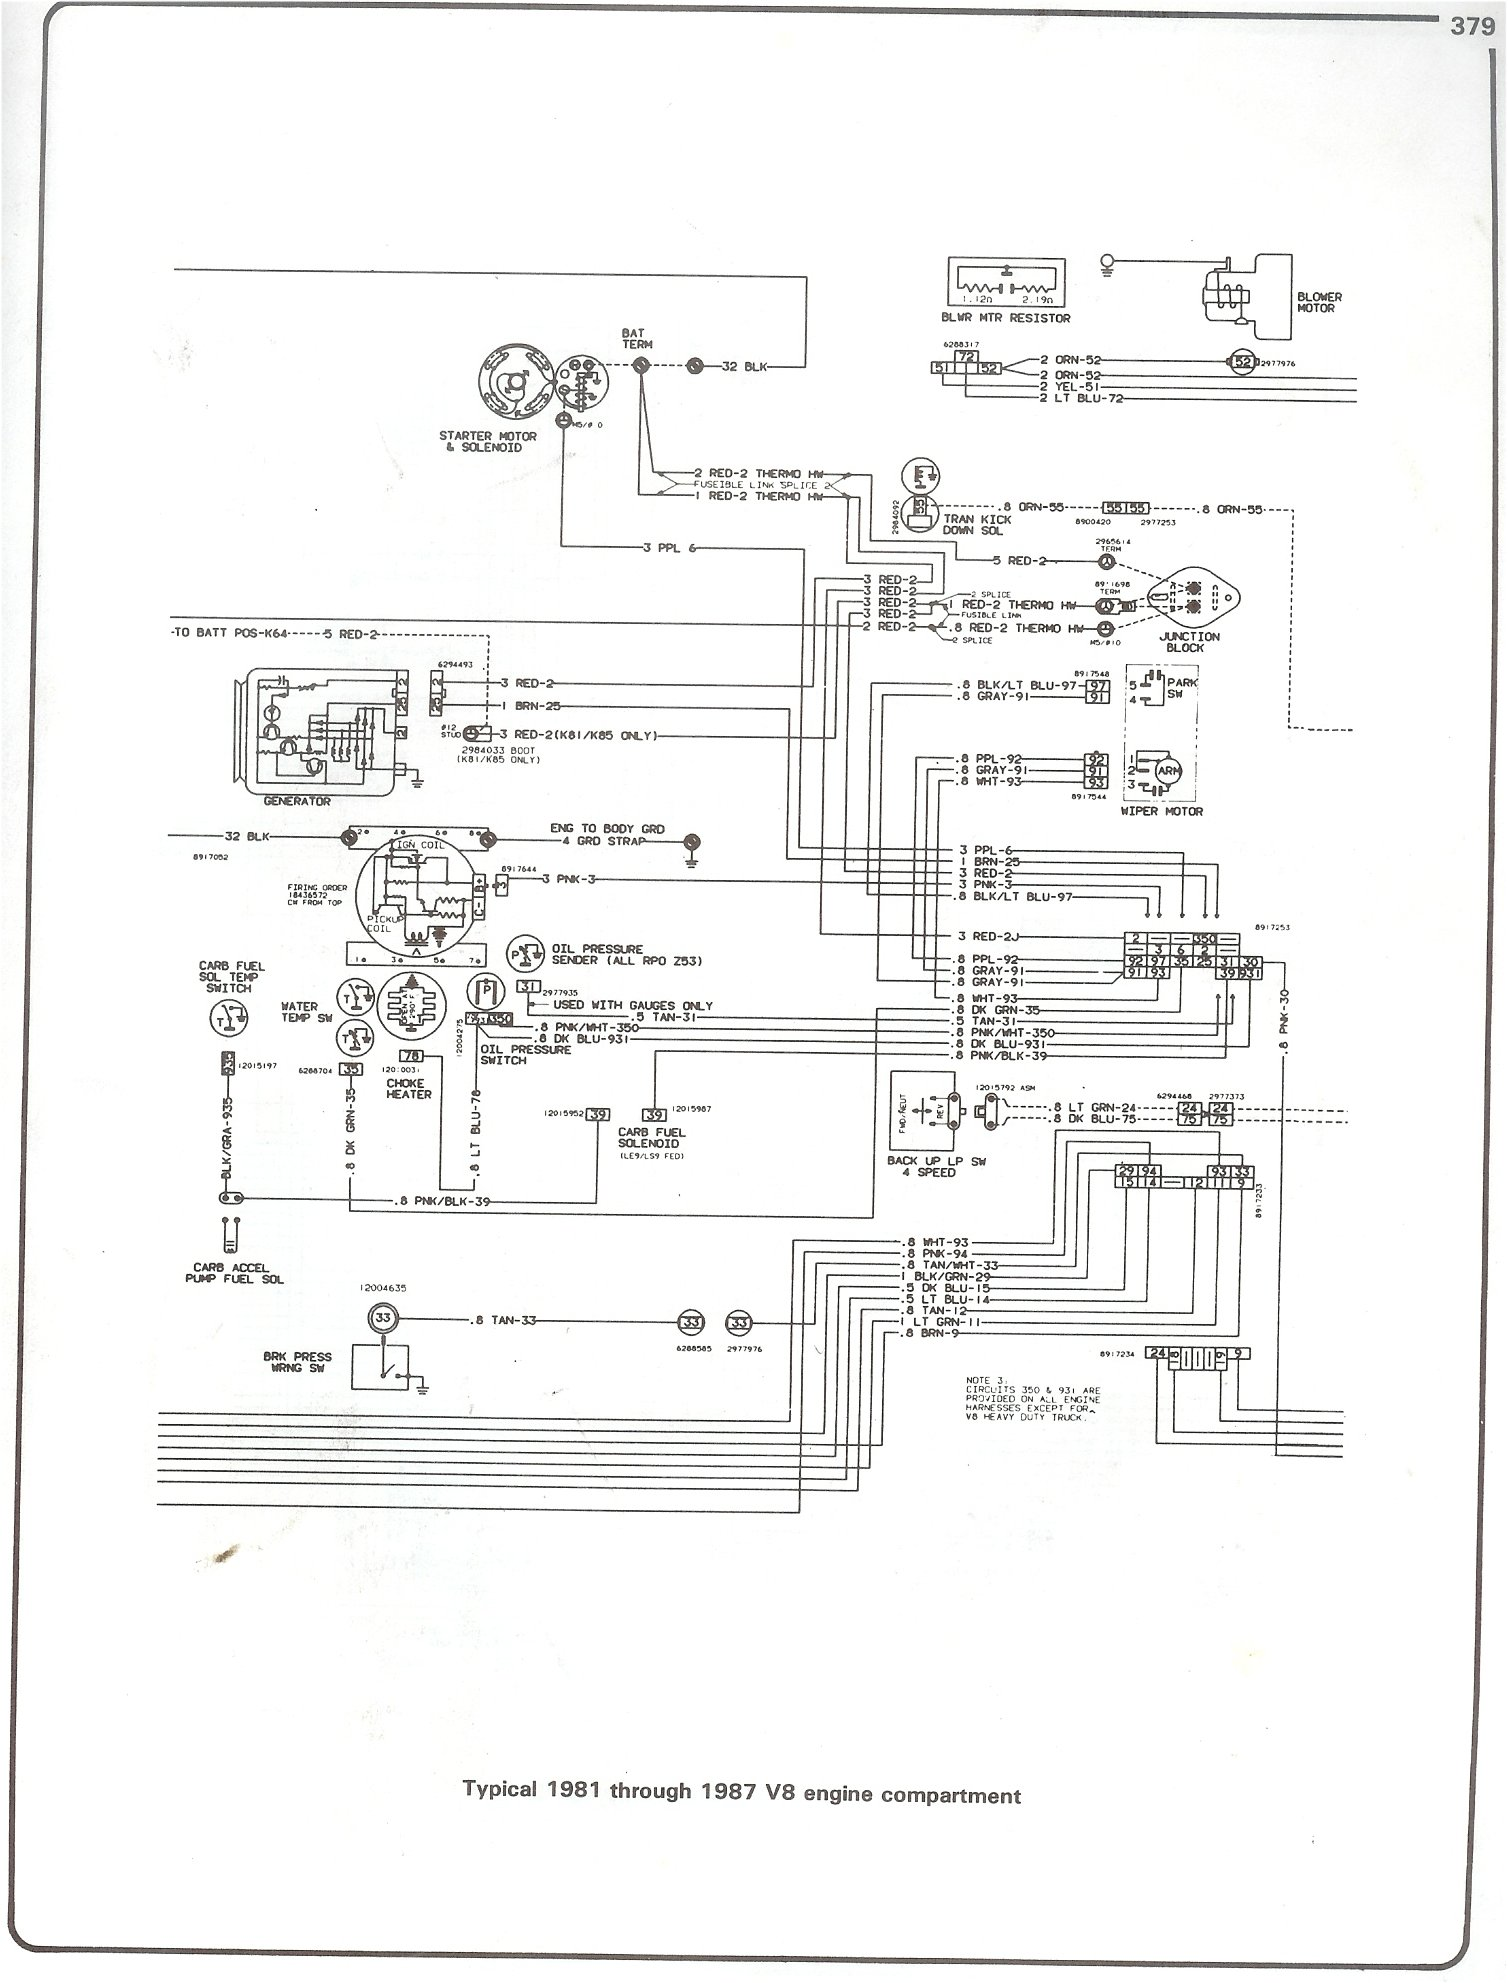 electrical diagrams chevy only page 2 truck forum Basic Electrical Schematic Diagrams Basic Electrical Schematic Diagrams